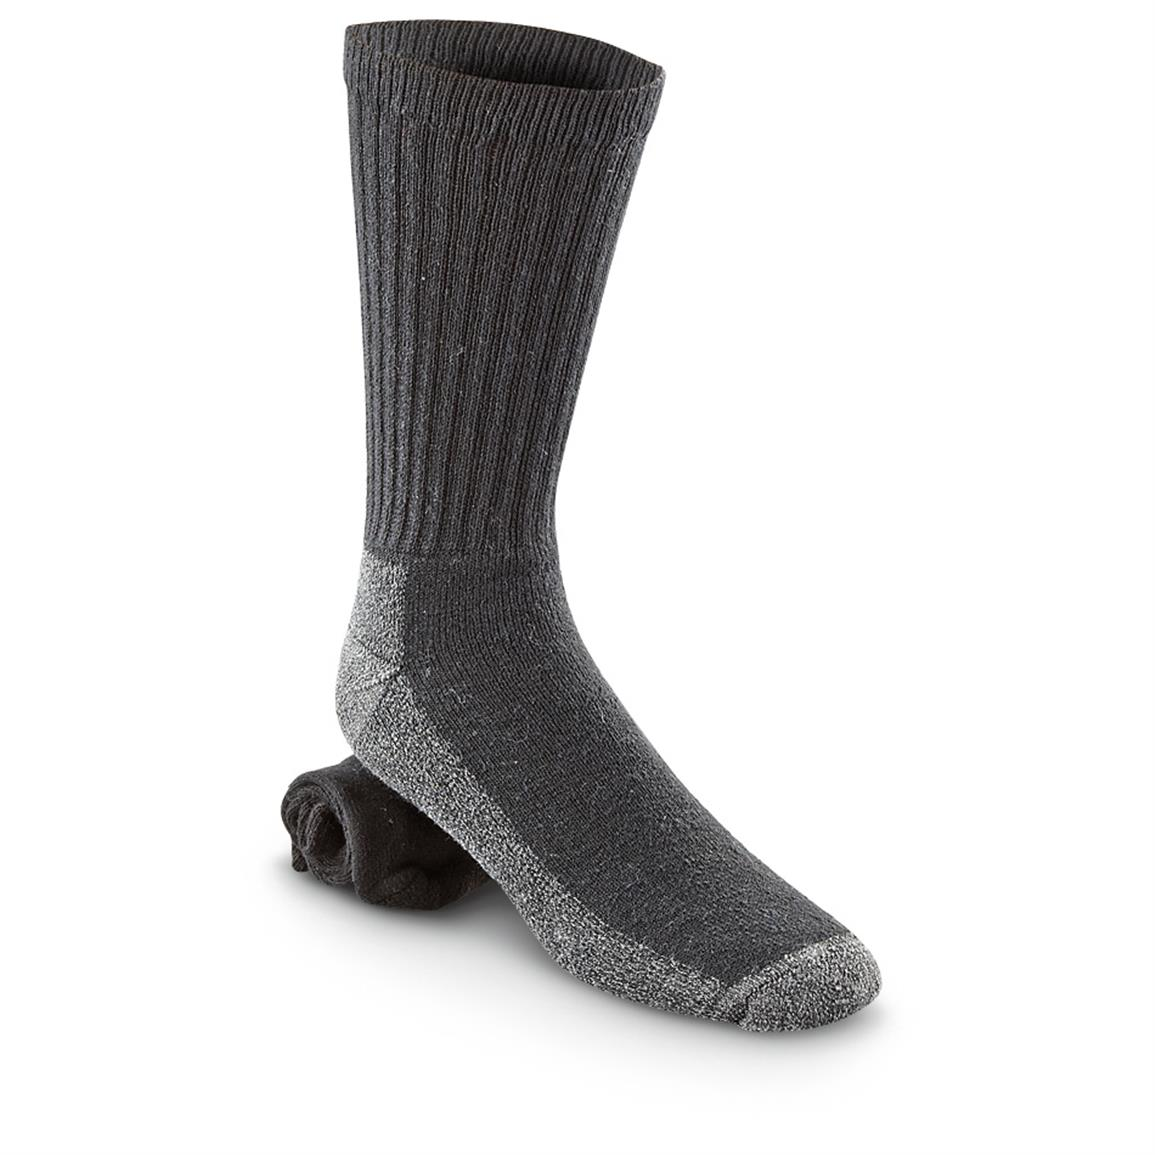 3-Pk. Wigwam® At Work Crew Socks, Black